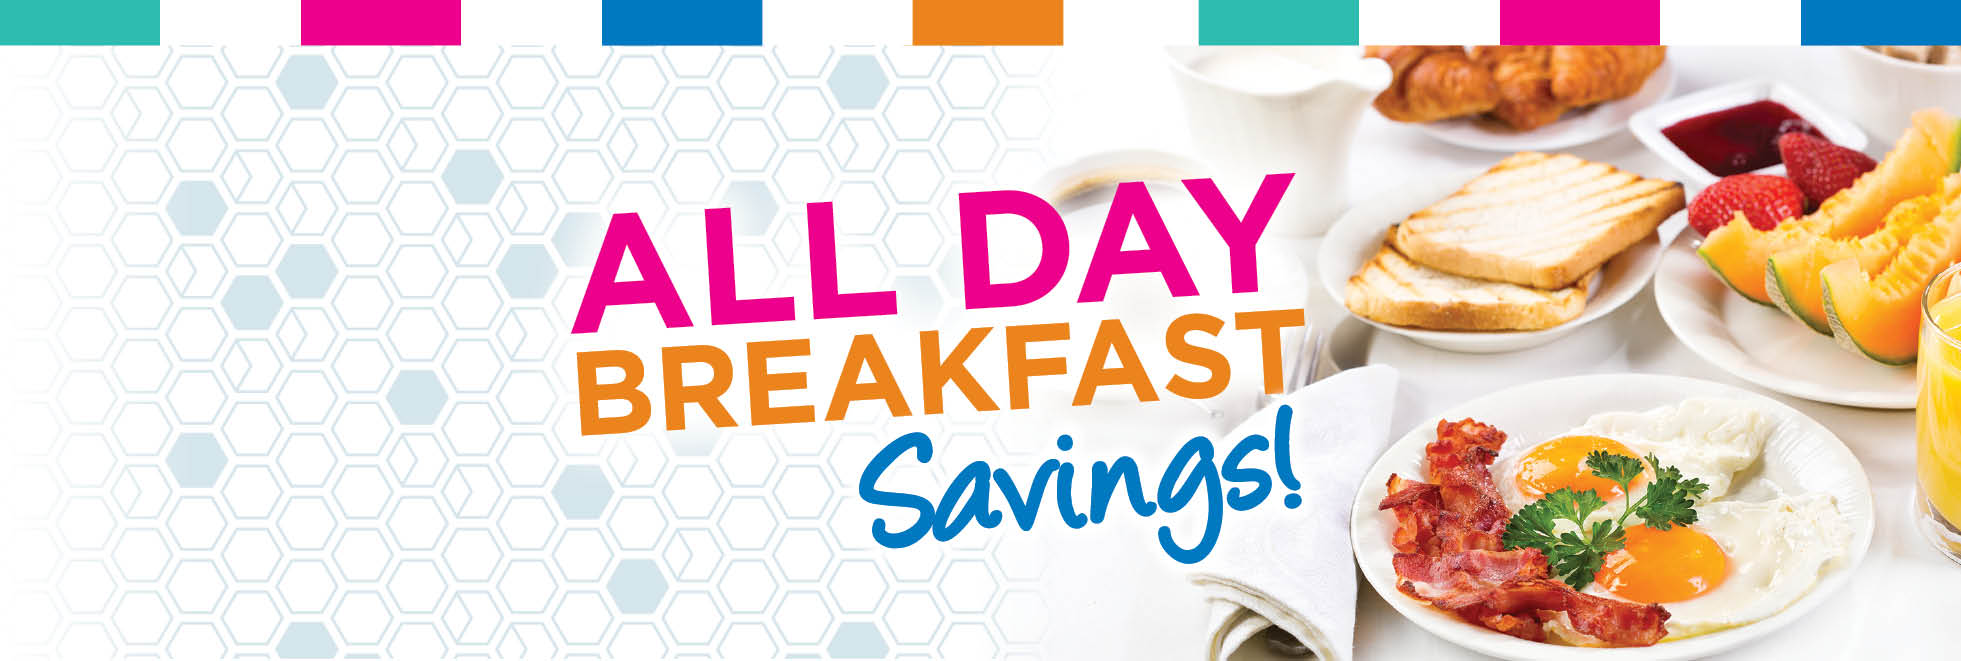 All Day Breakfast Savings